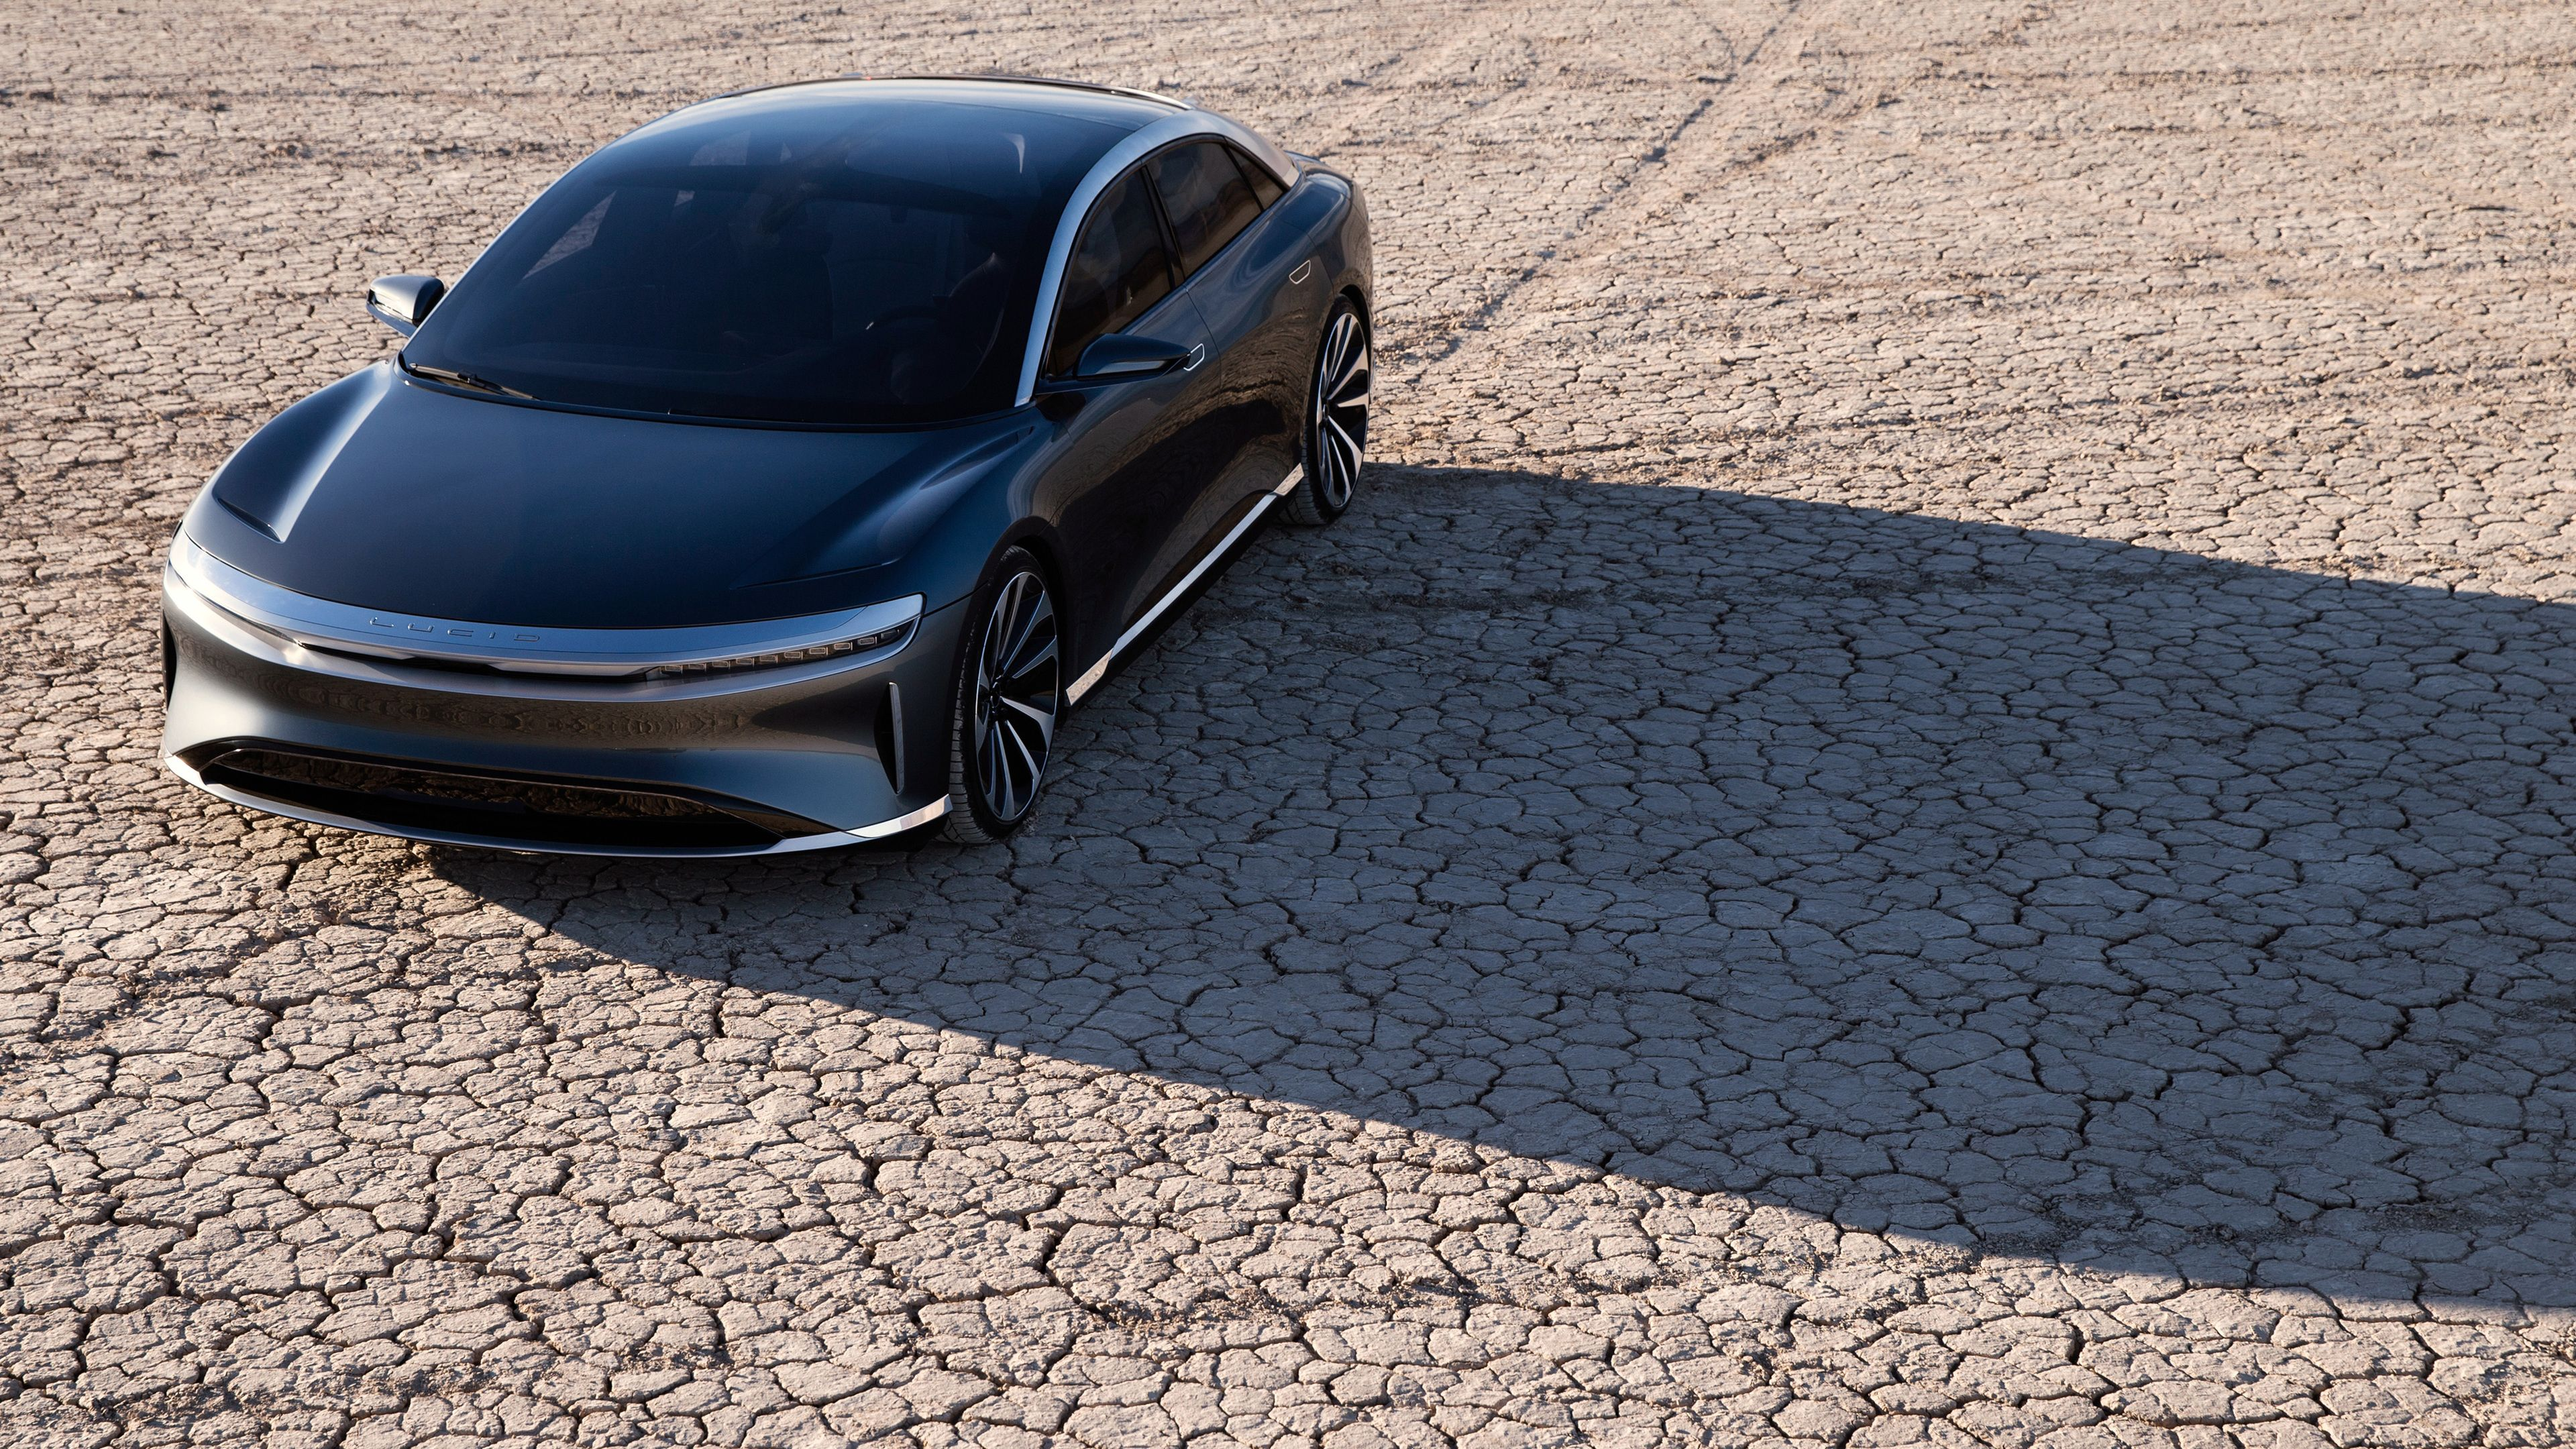 Lucid Air Launch Edition Prototype 2018 4k Lucid Air Wallpapers Hd Wallpapers Concept Cars Wallpapers Cars Wa All Electric Cars Car Wallpapers Electric Cars